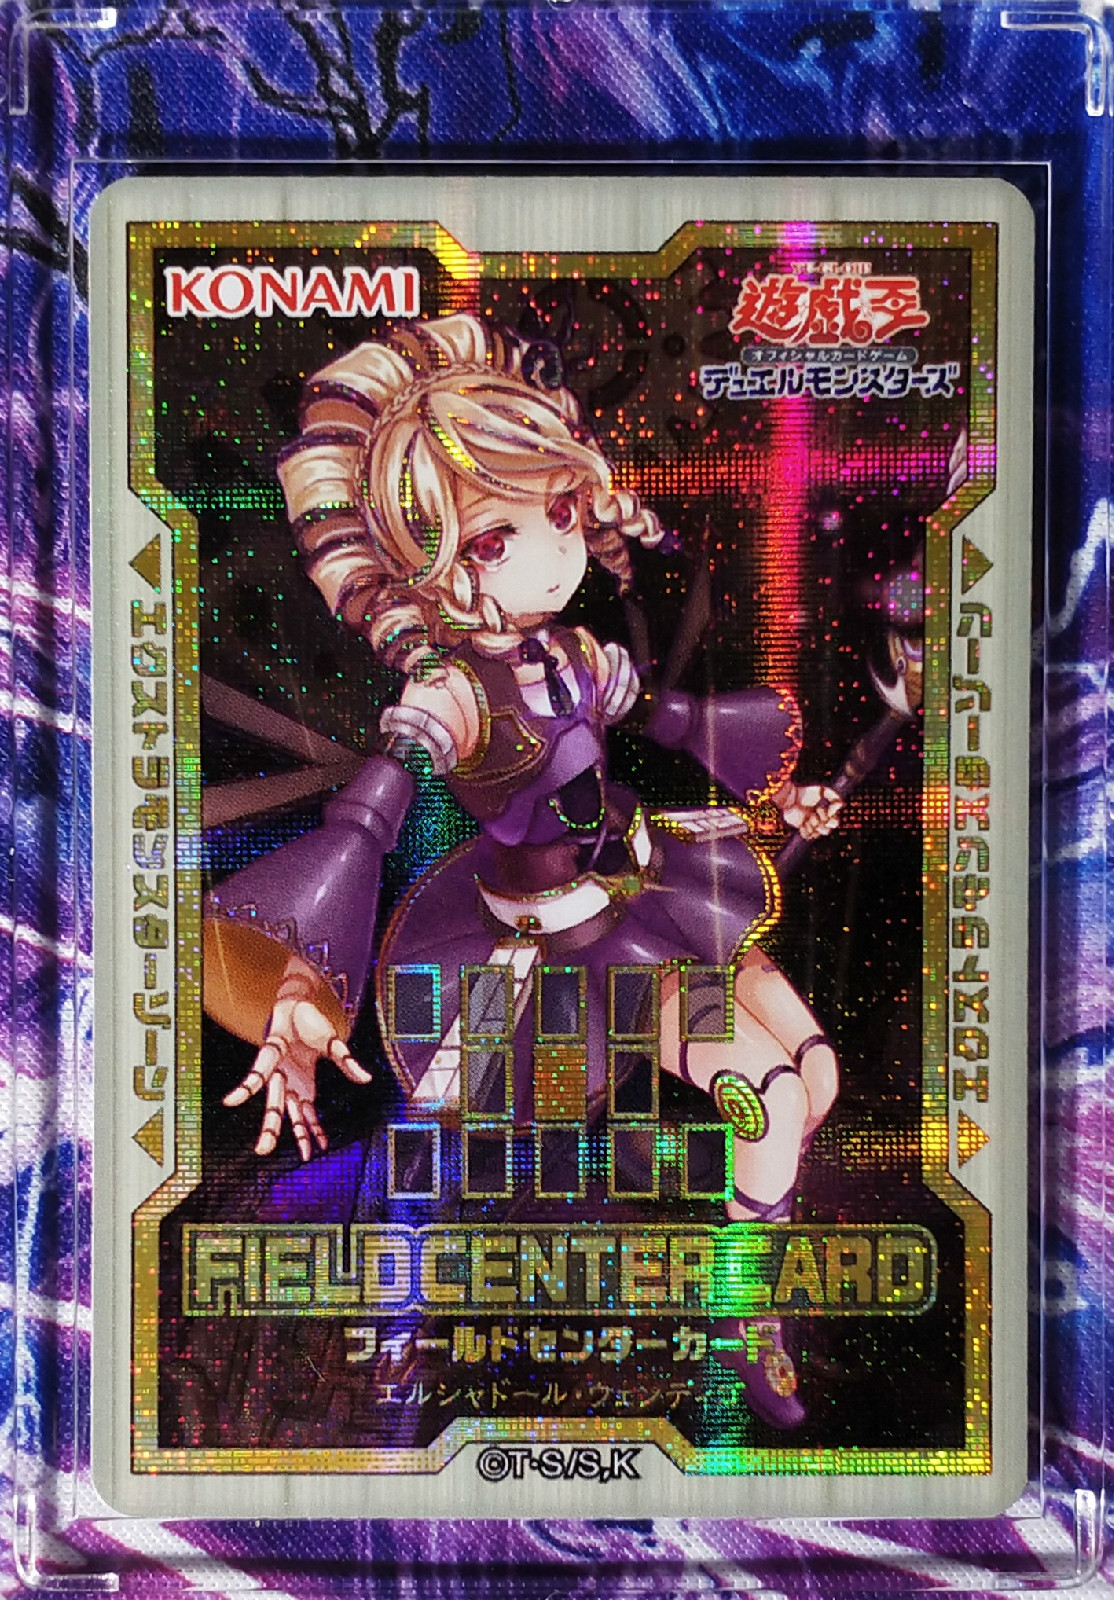 Yu Gi Oh El Shaddoll Wendigo DIY Colorful Toys Hobbies Hobby Collectibles Game Collection Anime Cards